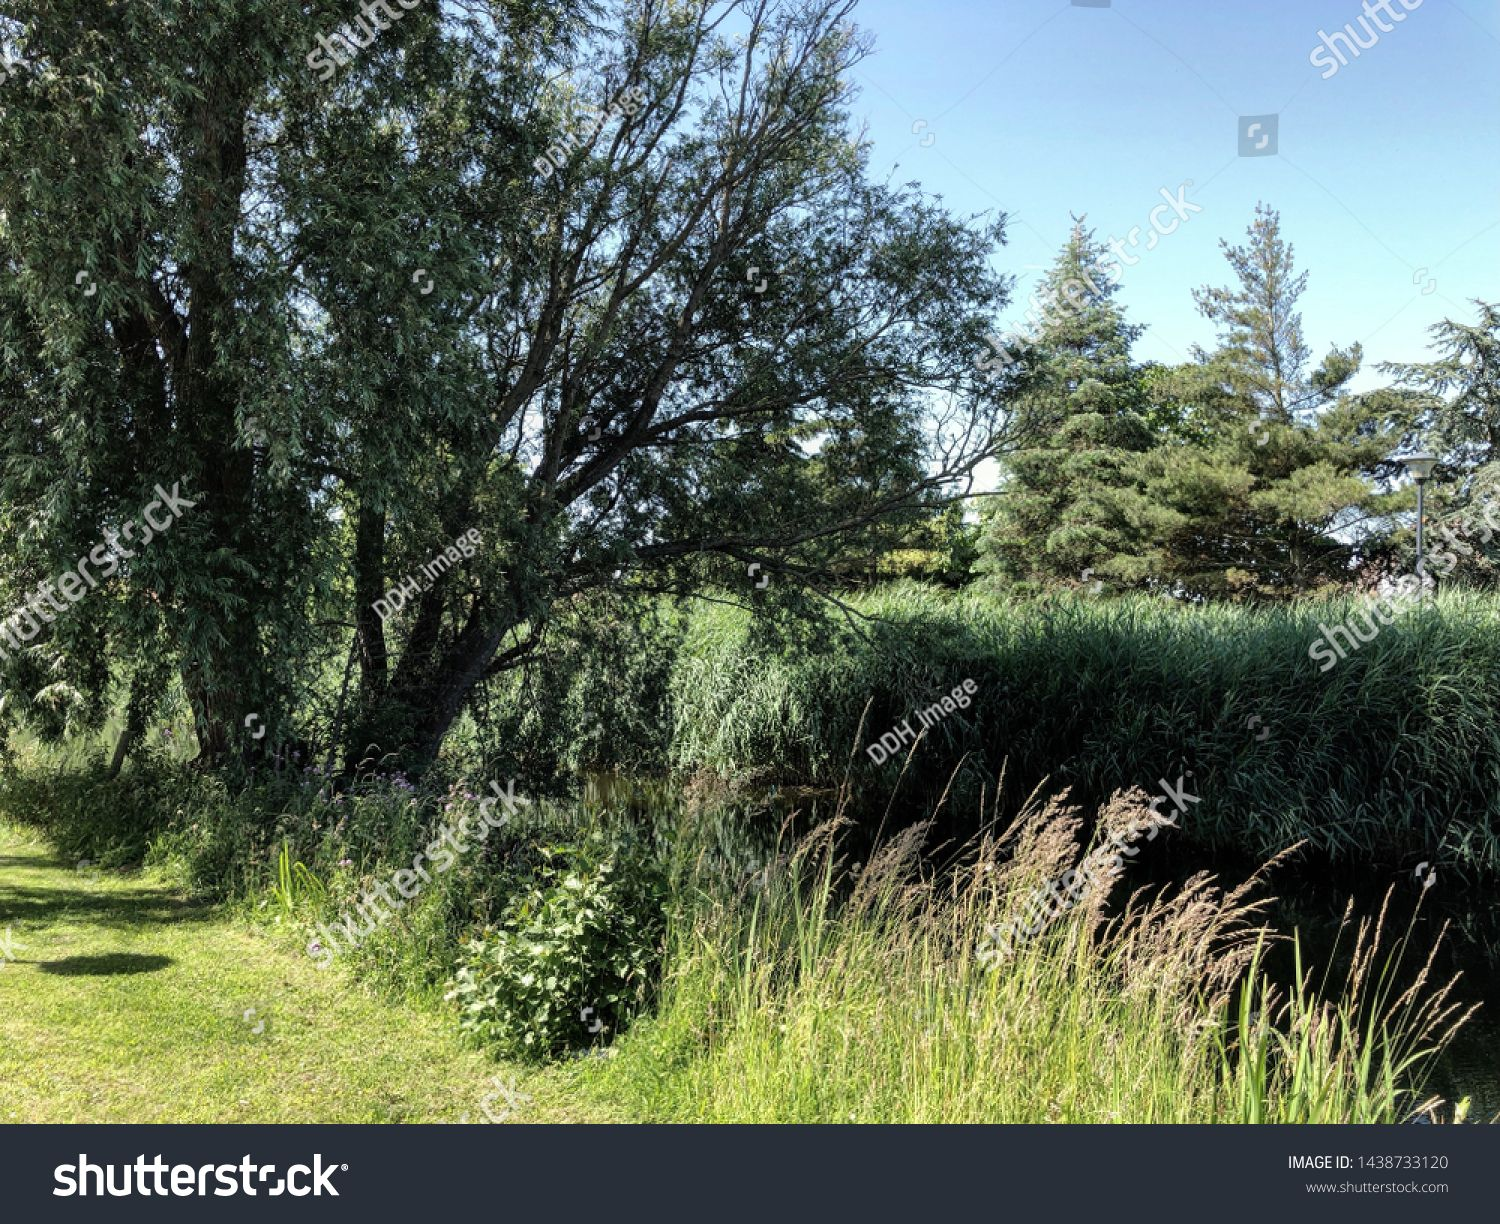 Outdoor Green Park Forest Next To River Rural Landscape Path With Trees And Grass And Modern Benche Sponsored Affiliate Fo Park Forest Green Park Outdoor